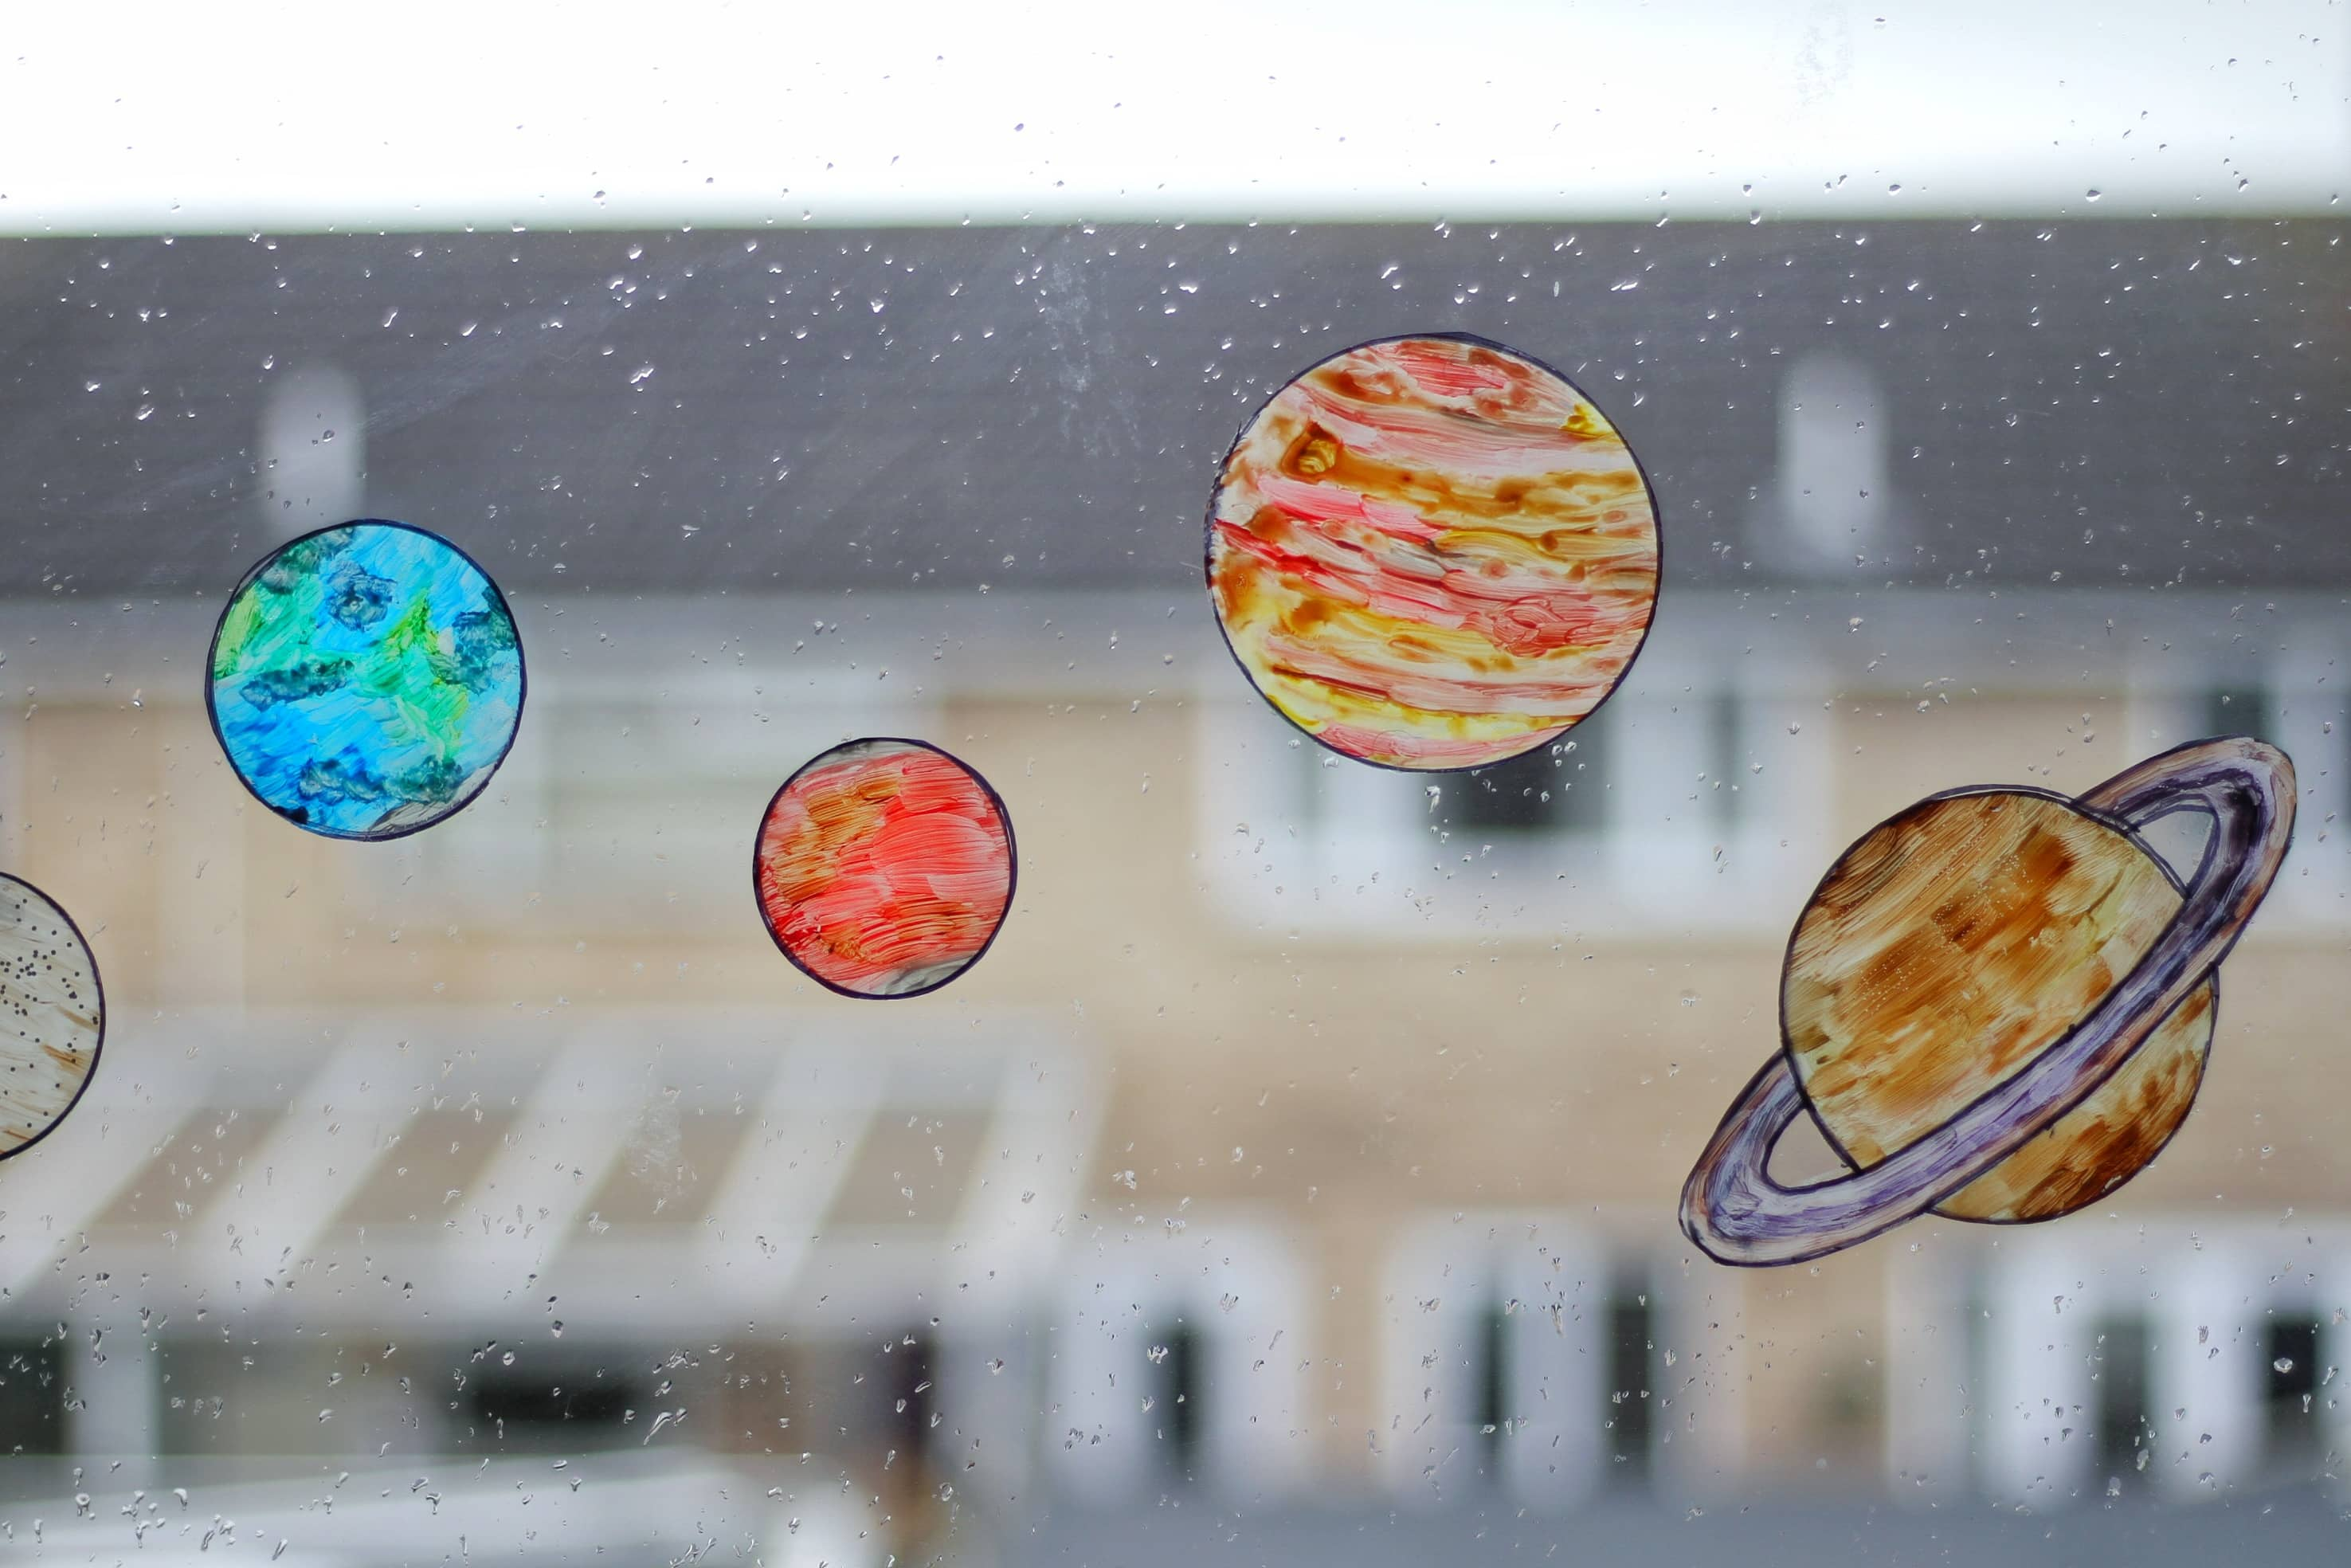 solar system sun-catchers displayed on the window